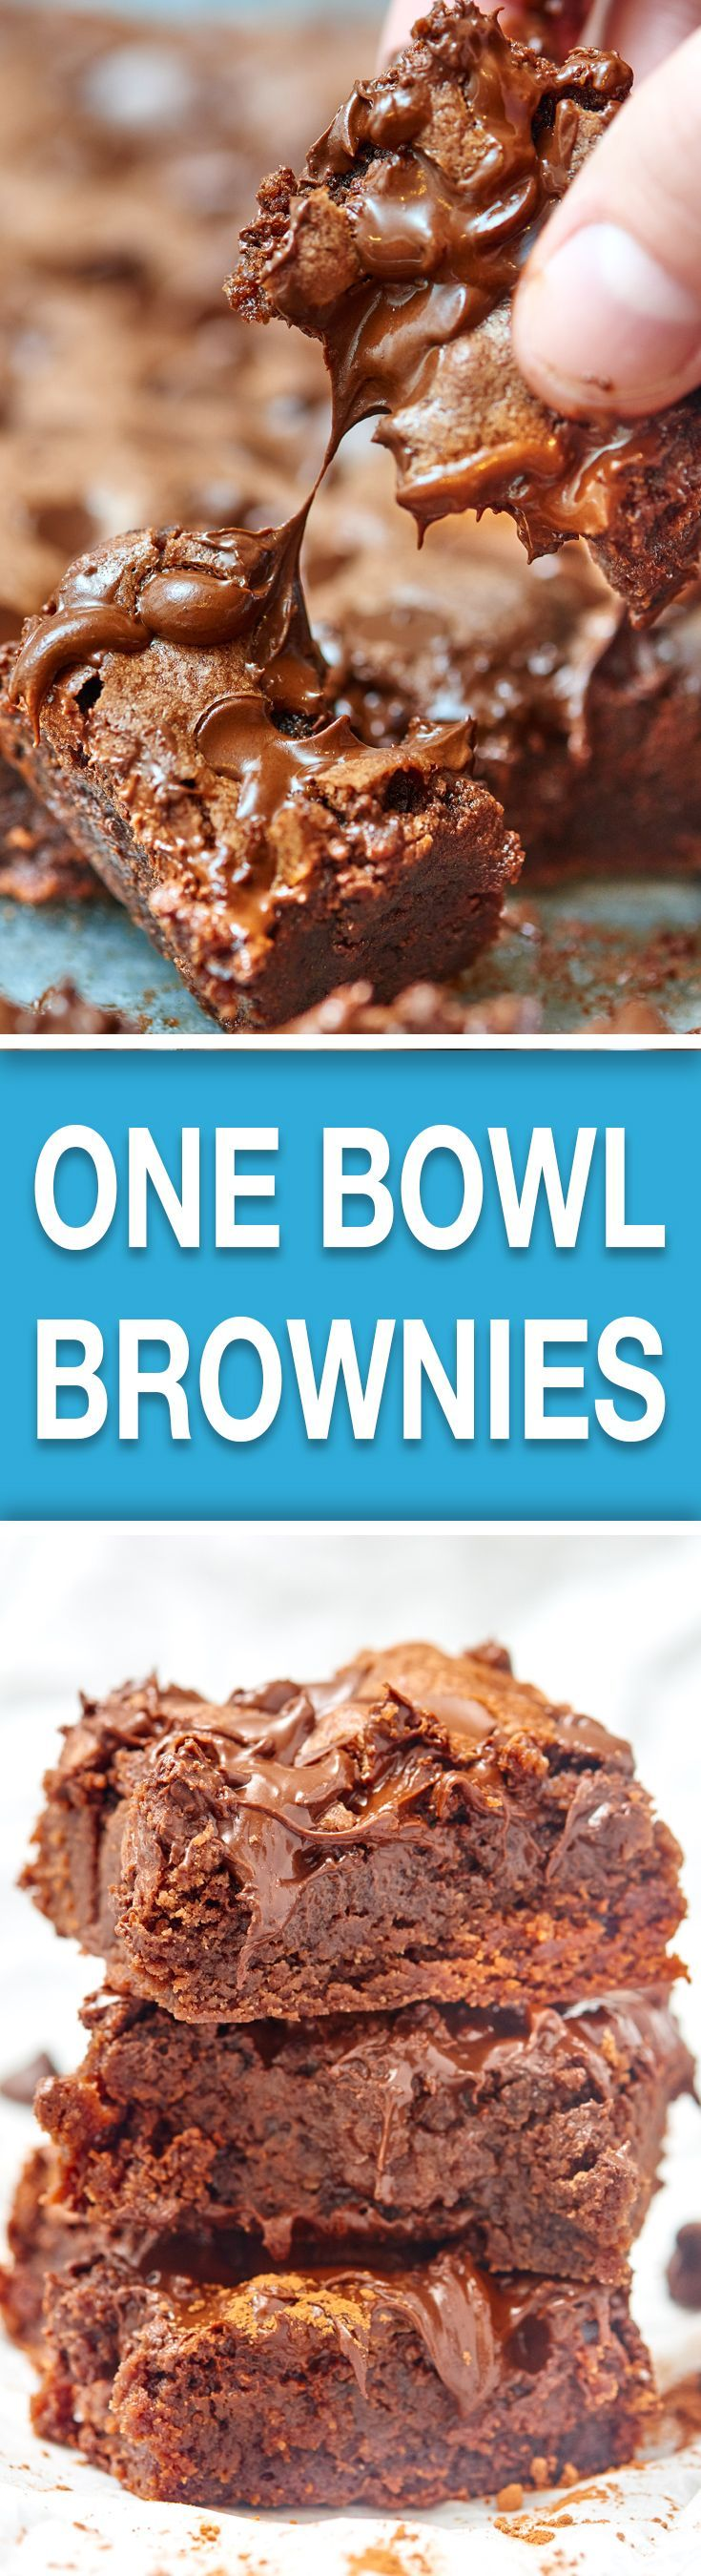 These are the easiest brownies...ever. You need 8 ingredients, 5 minutes, and 1 bowl to make these rich, chocolatey brownies! Think you can handle it? :) showmetheyummy.com #brownies #baking Switch out the flour for GF version